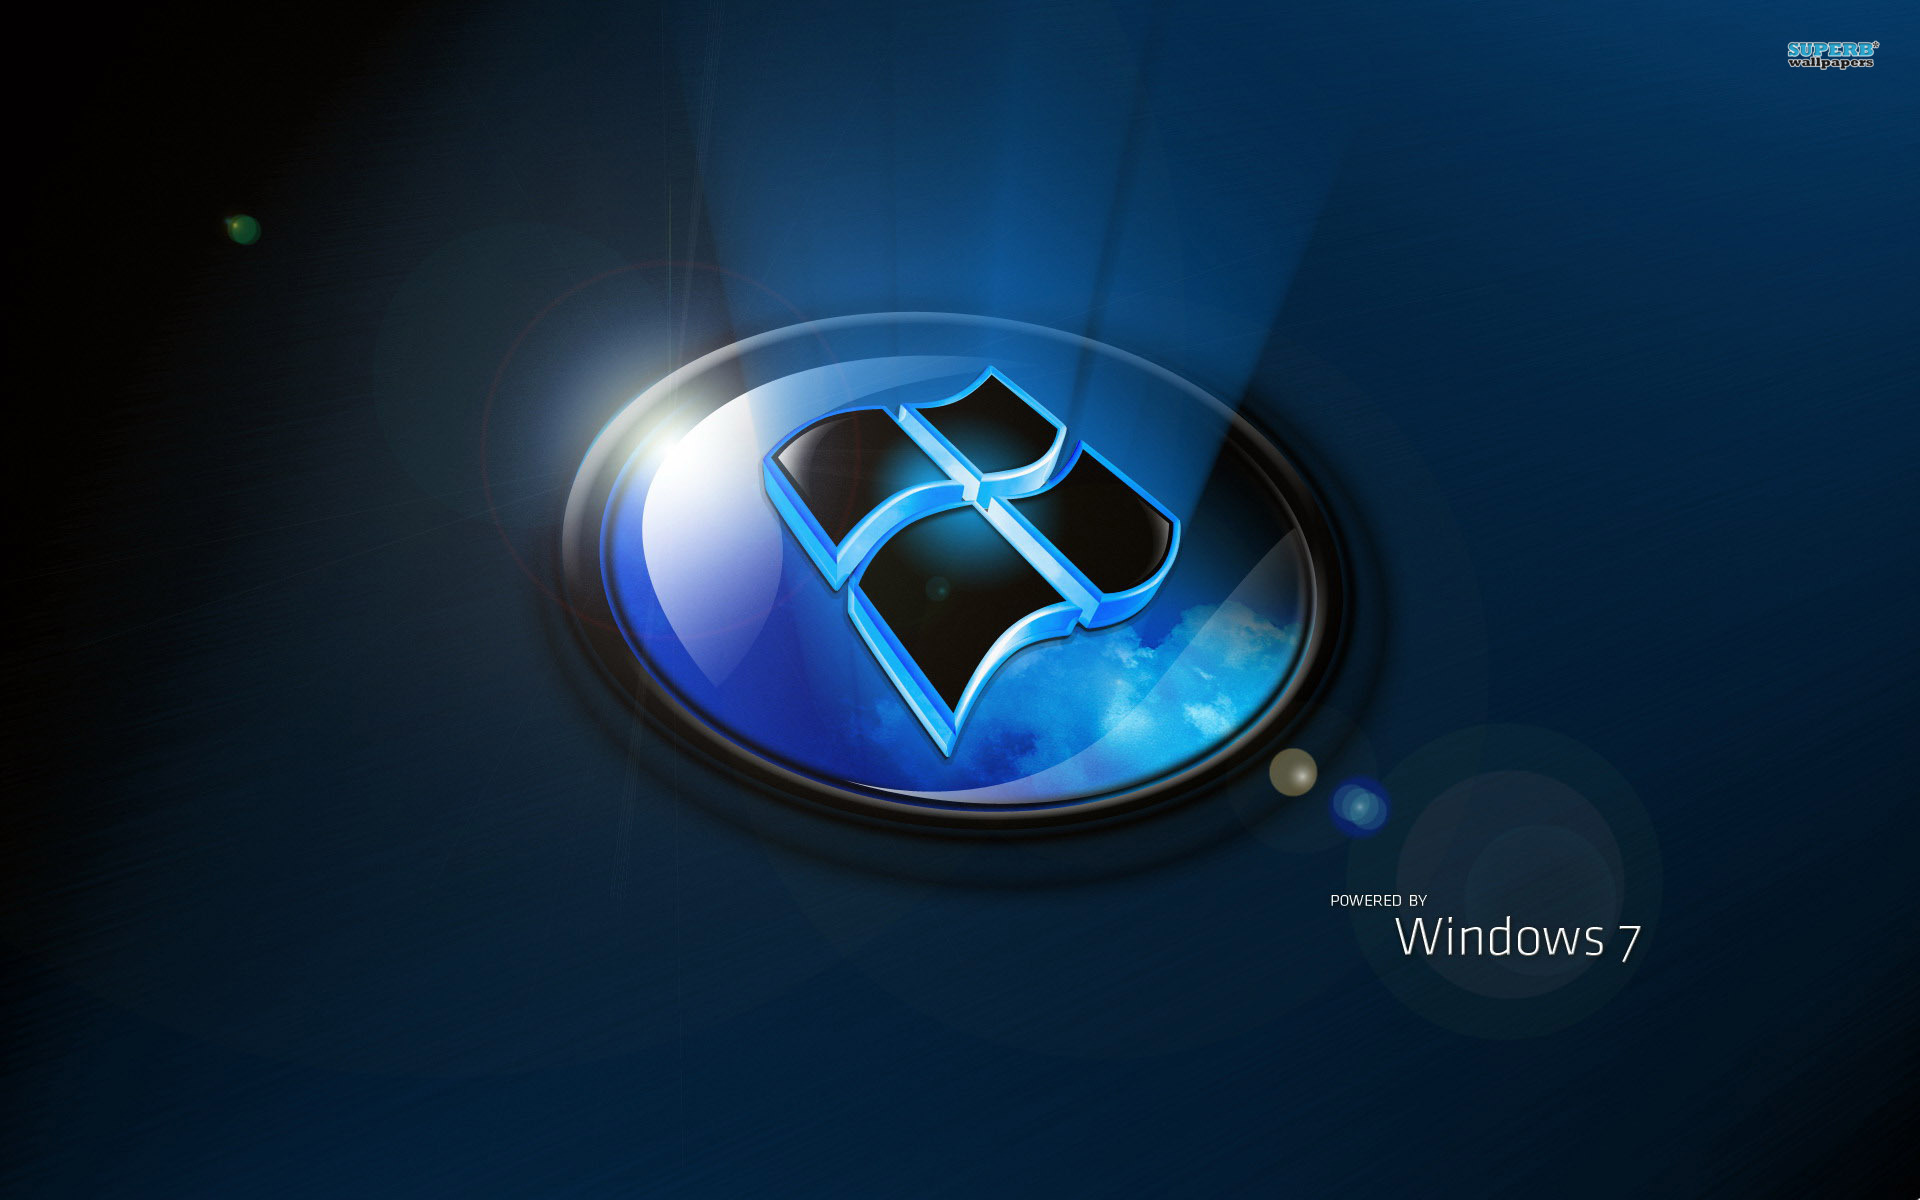 Windows 7 wallpaper 1920x1200